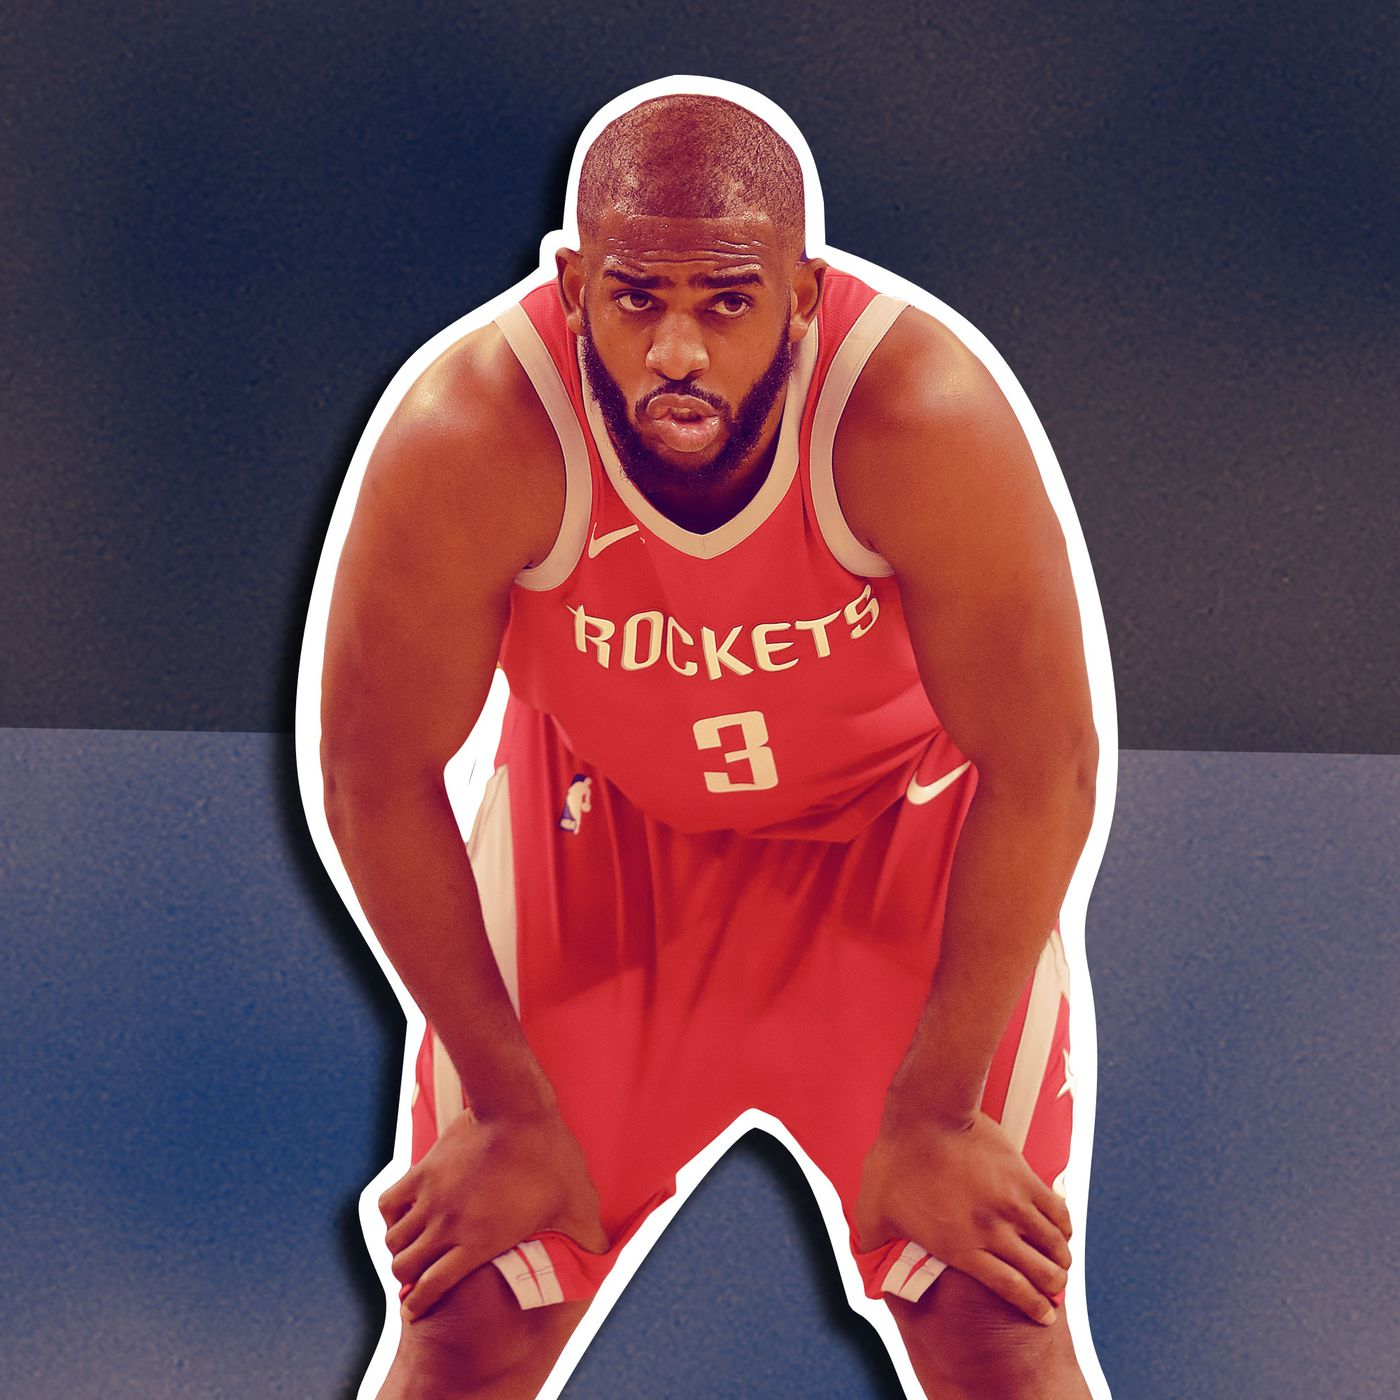 b21c6a53d046 Something s Not Quite Right With Chris Paul. Houston s ...